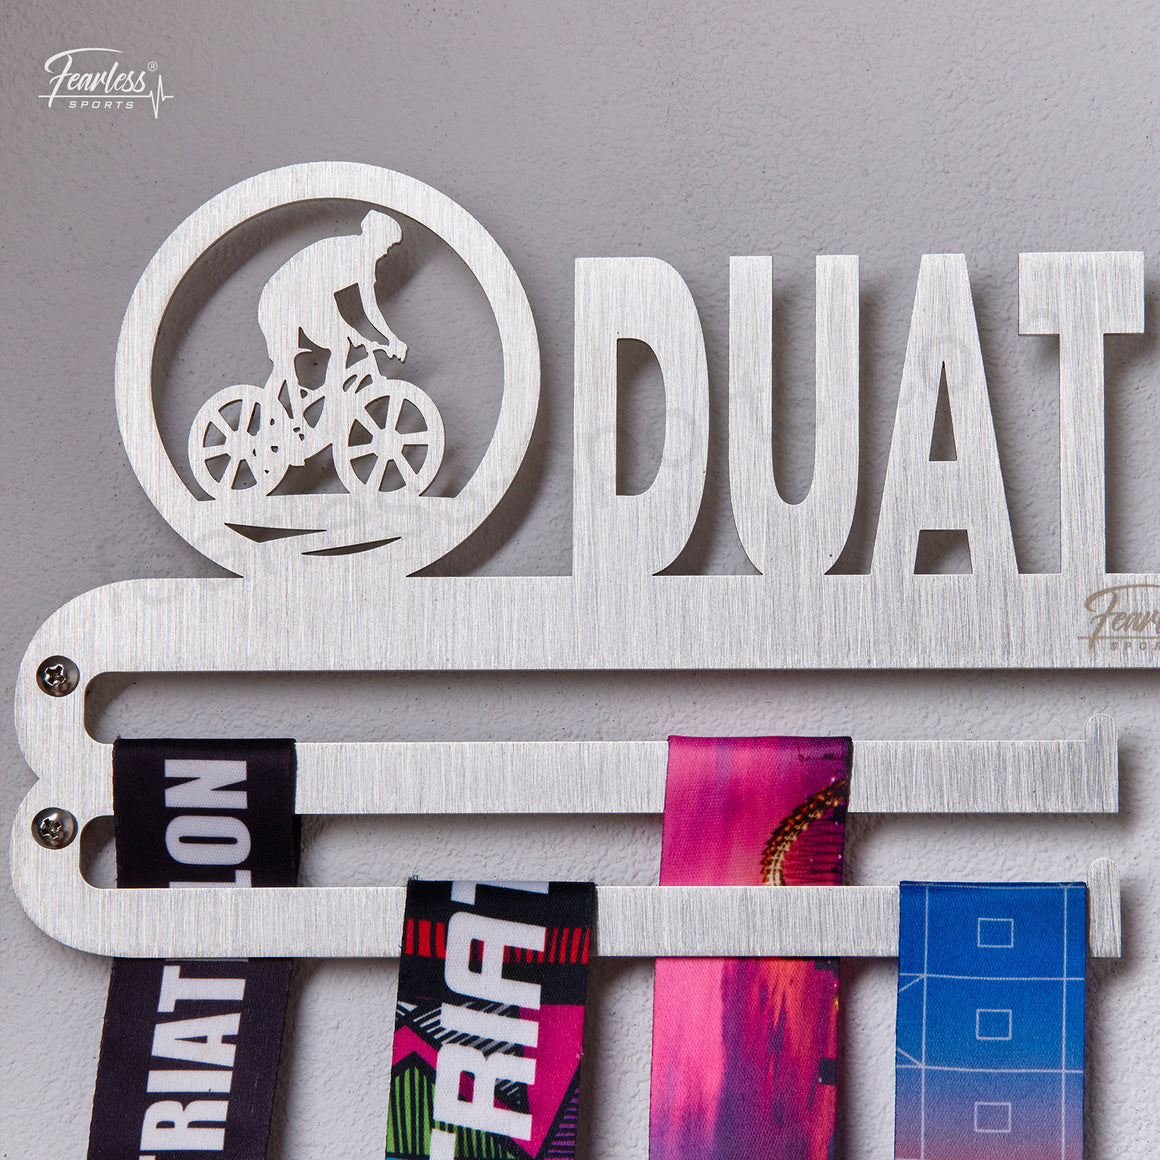 Duathlon Stainless Steel Medal Display Hanger ITM./ART.5180 - Fearless Sports